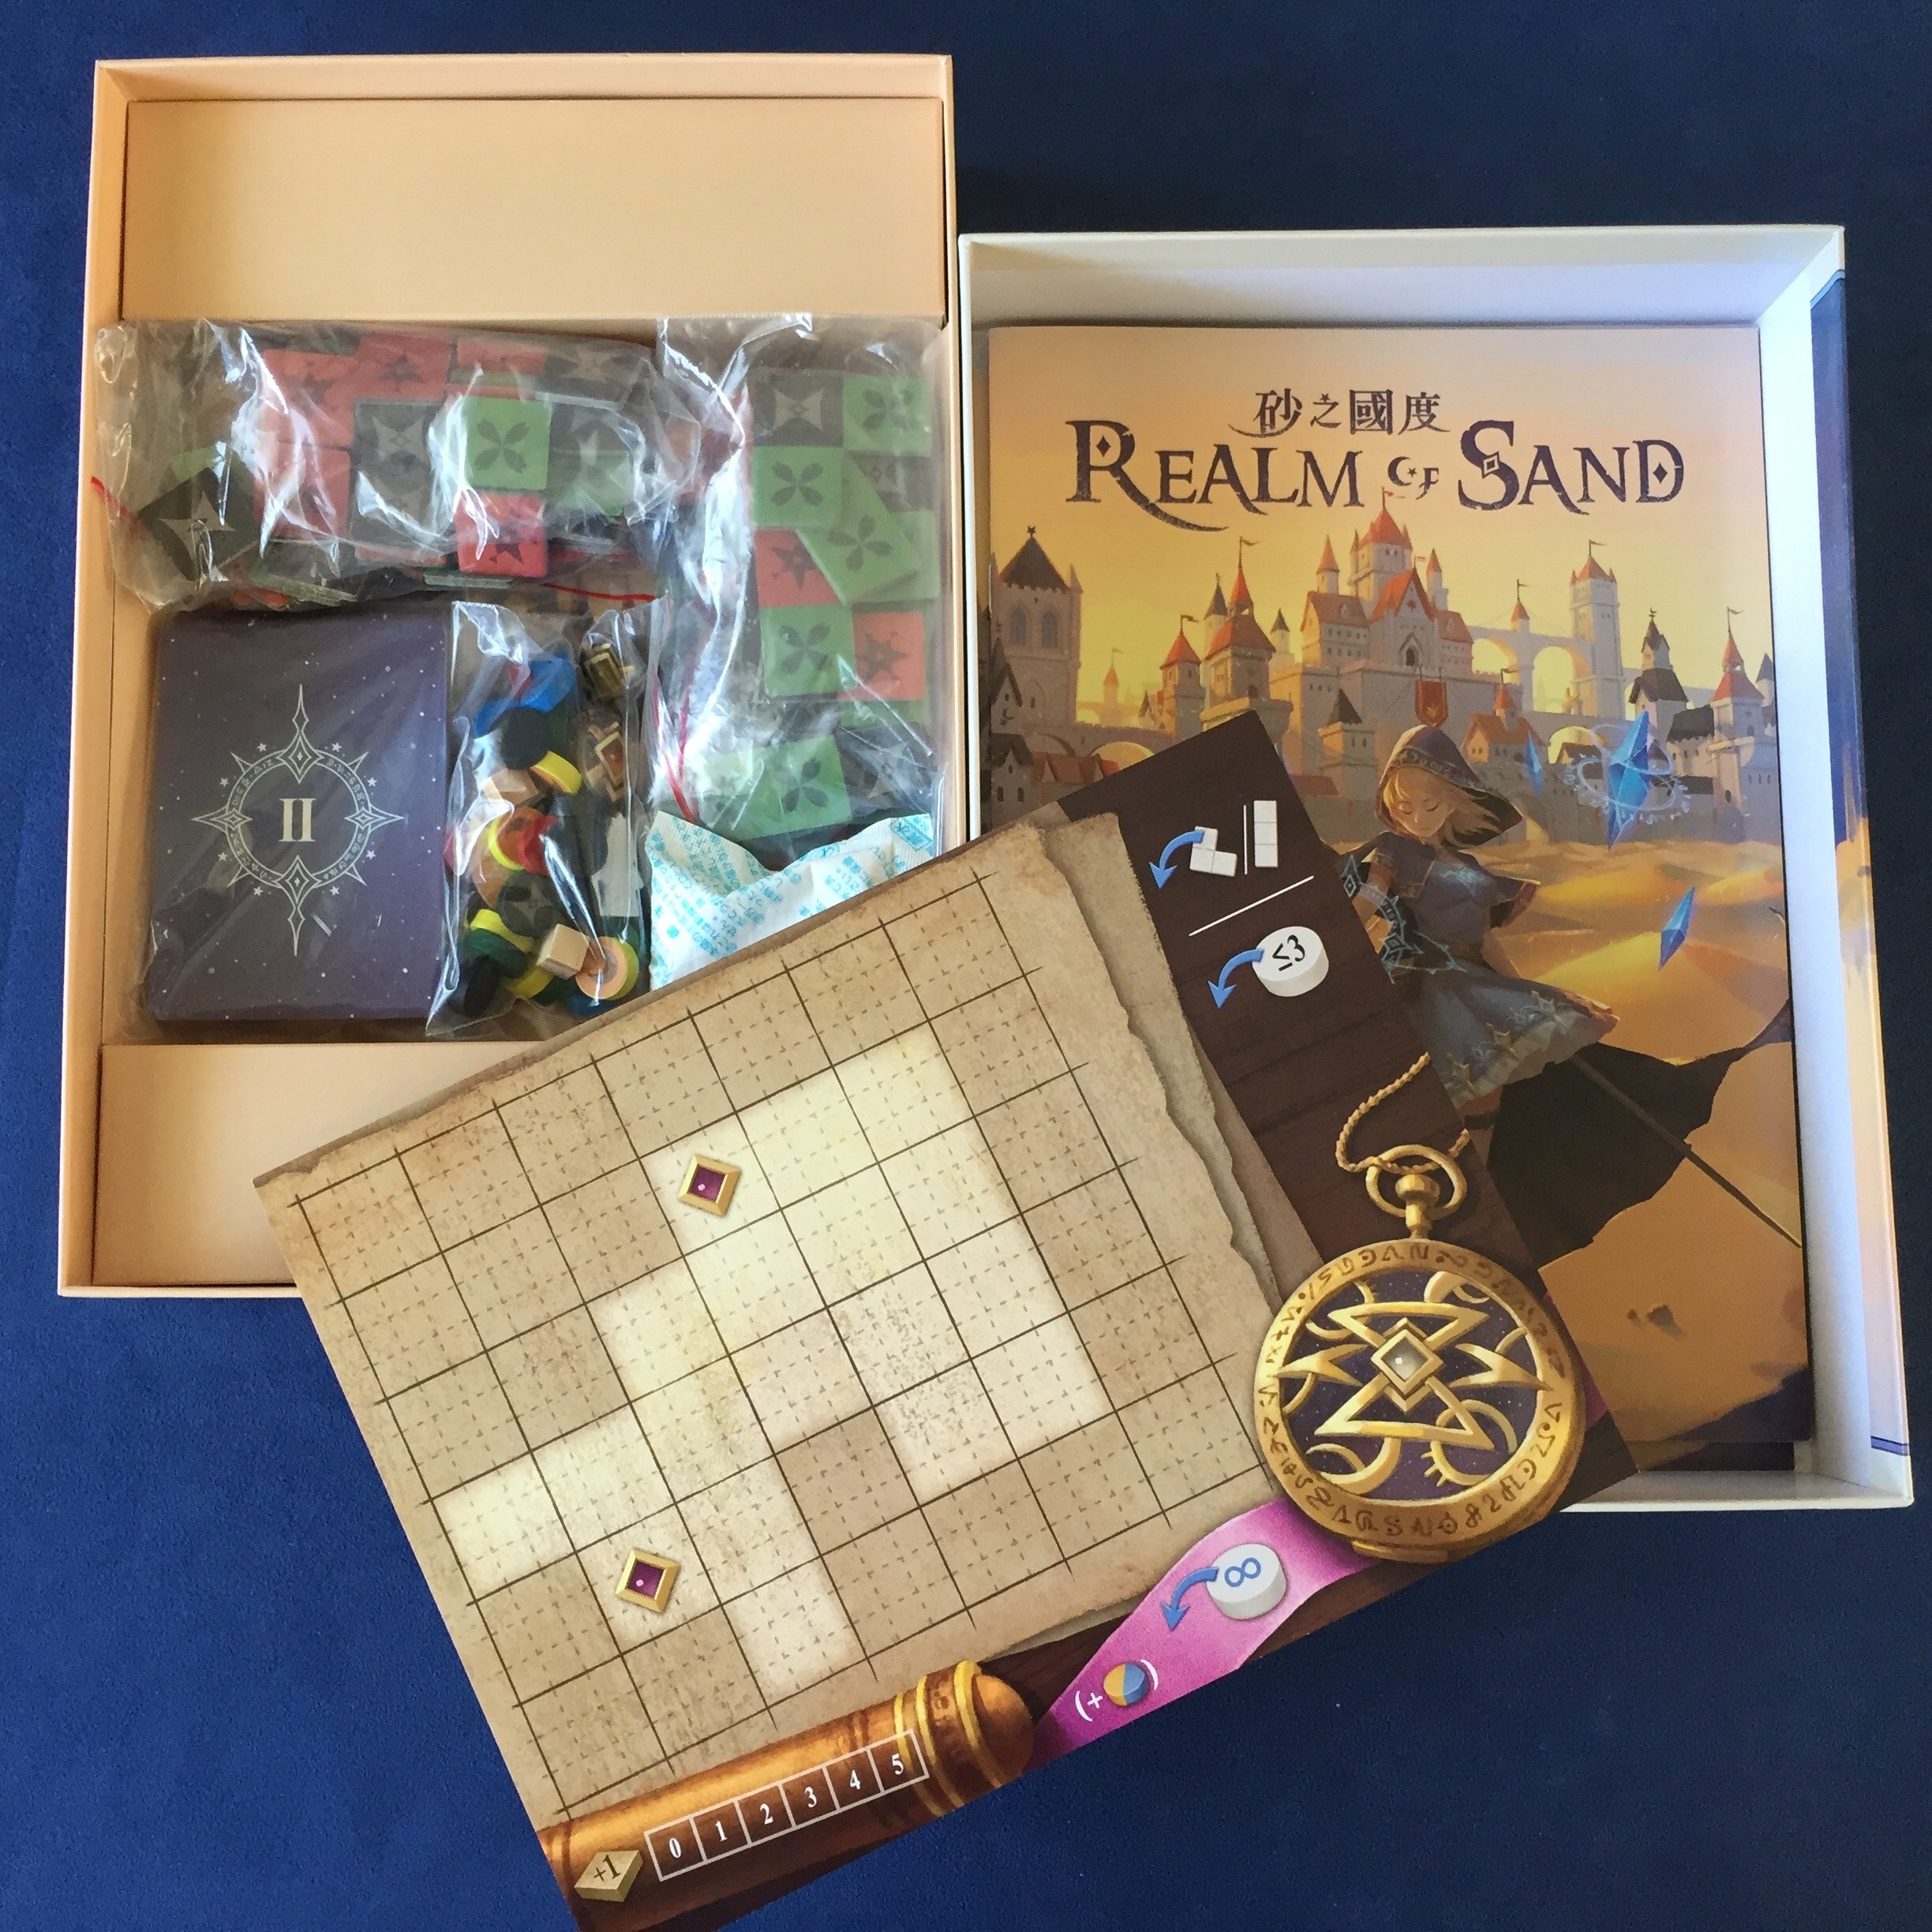 The third of EmperorS4's mid-sized boxes. Realm of Sand easily fits in any backpack.